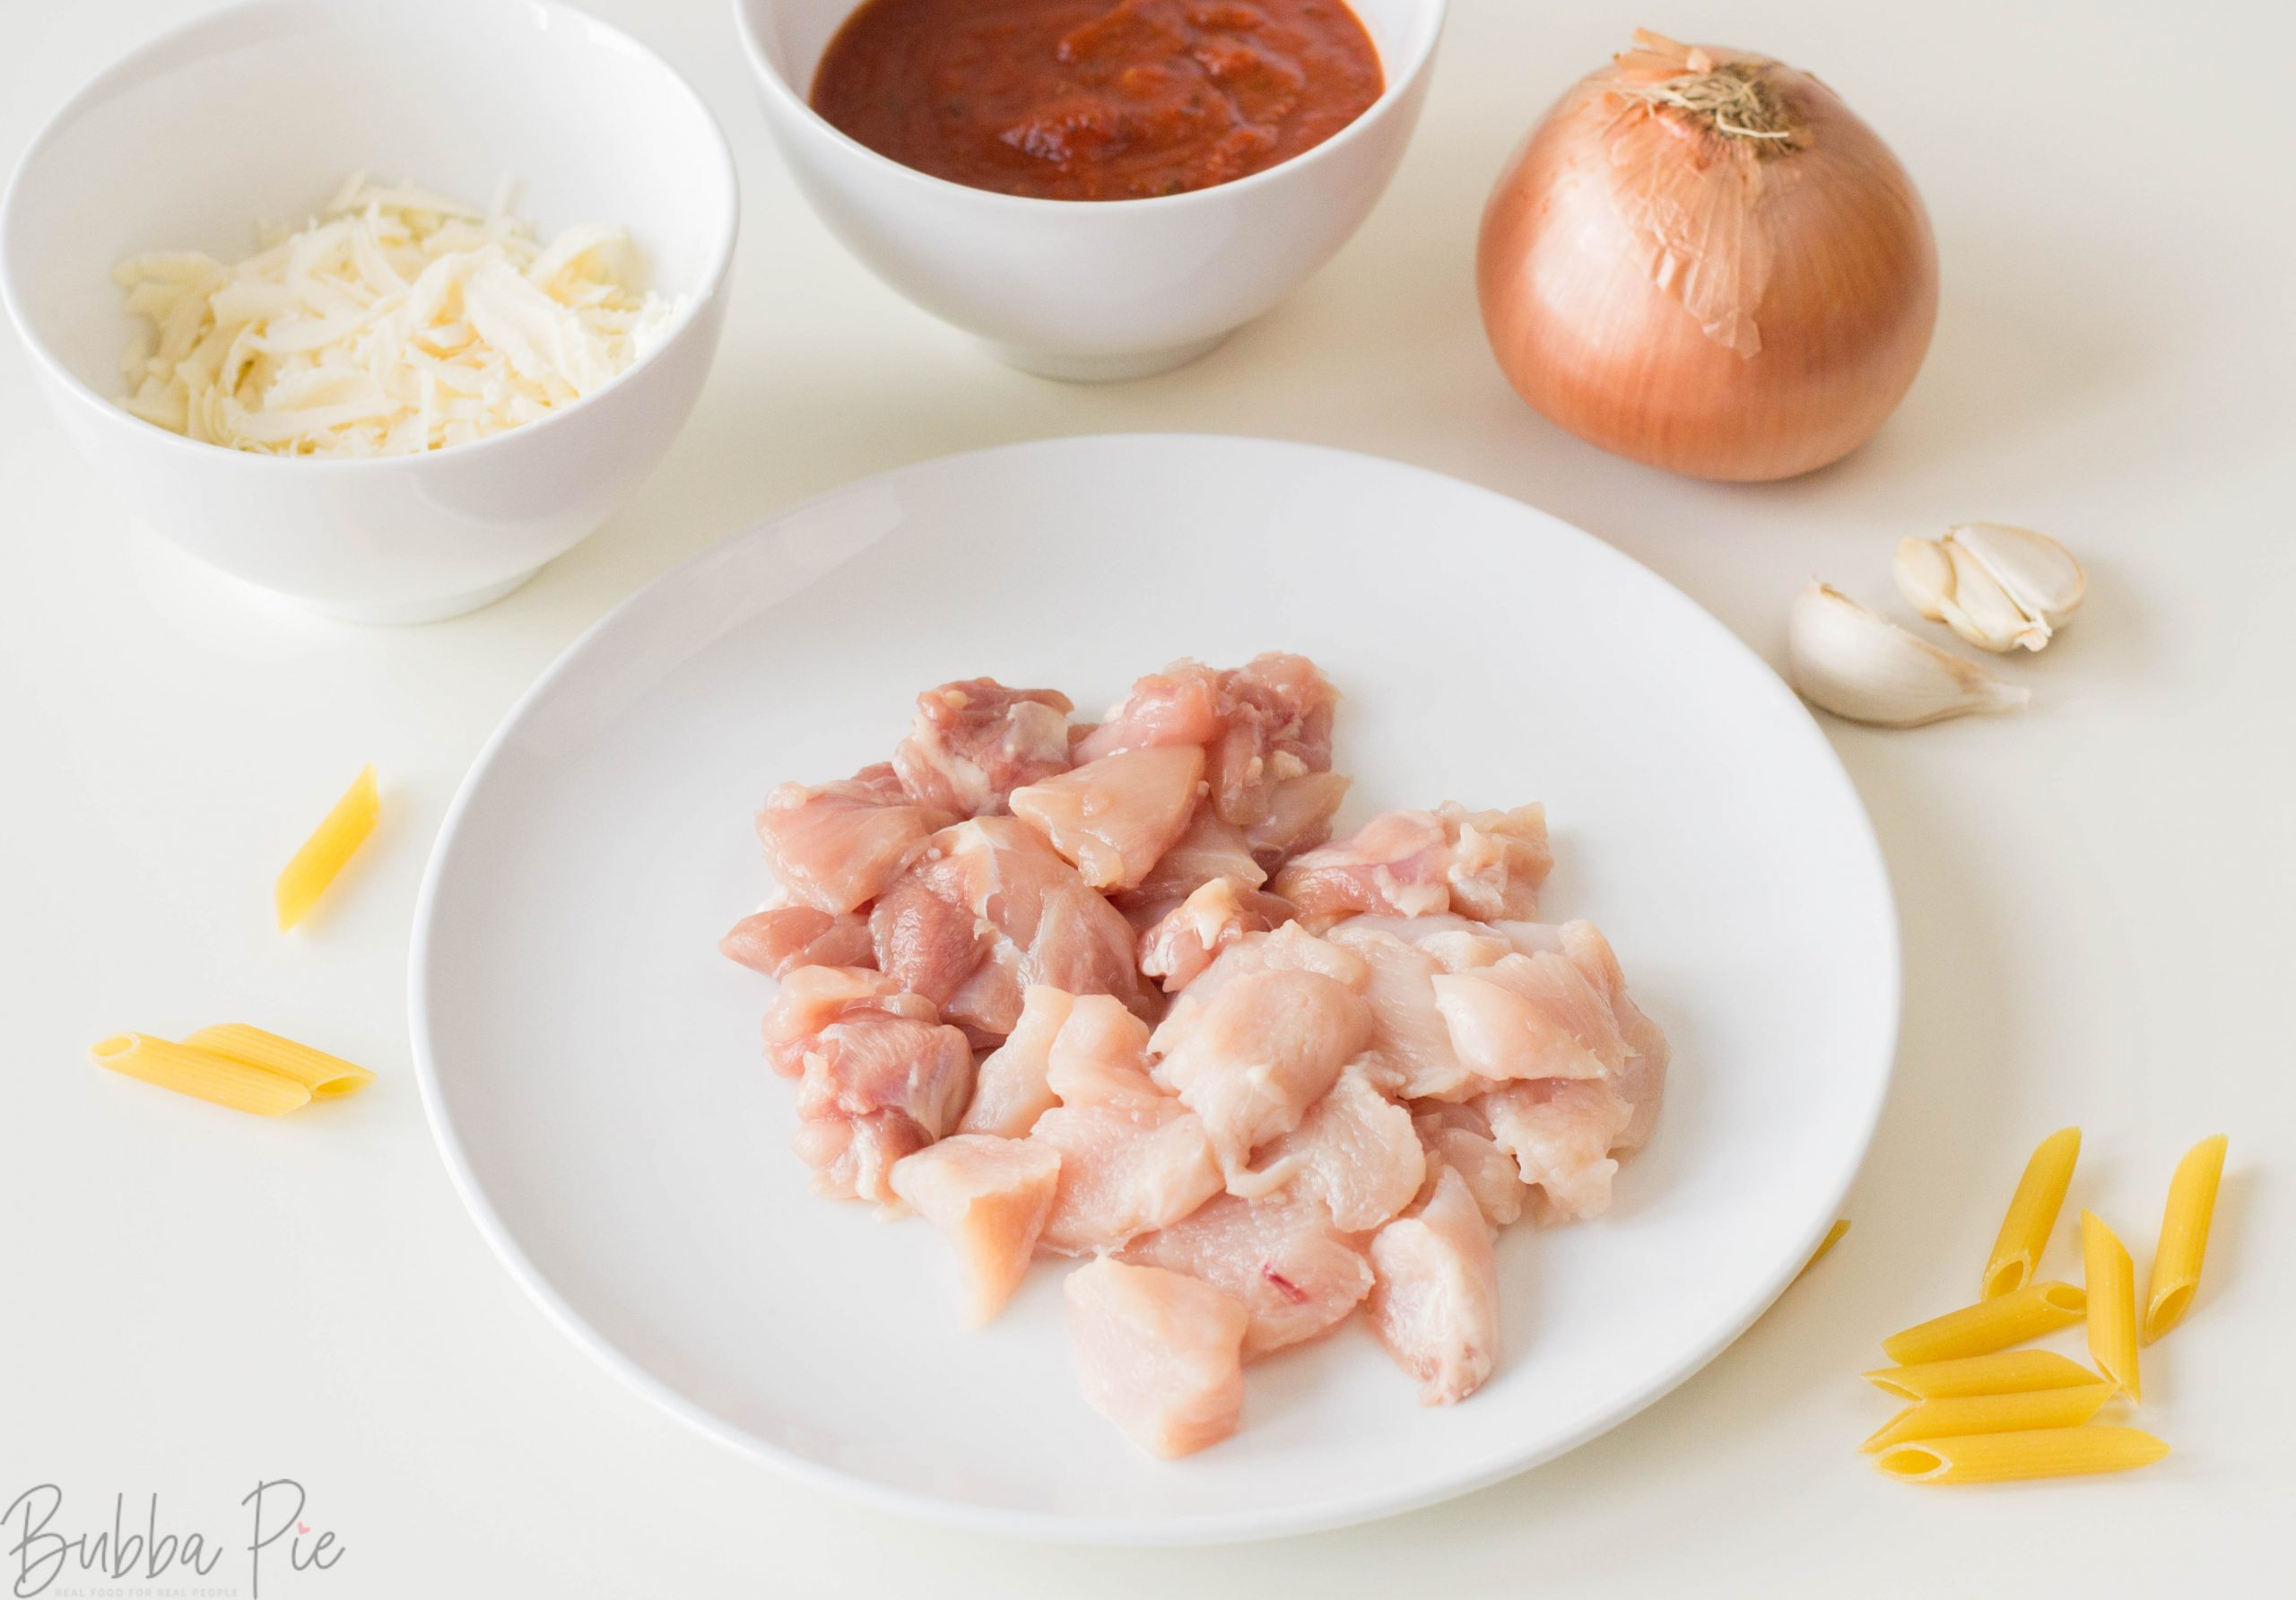 Instant Pot Chicken And Cheese Pasta ingredients include chicken, garlic, onion, butter and tomato sauce